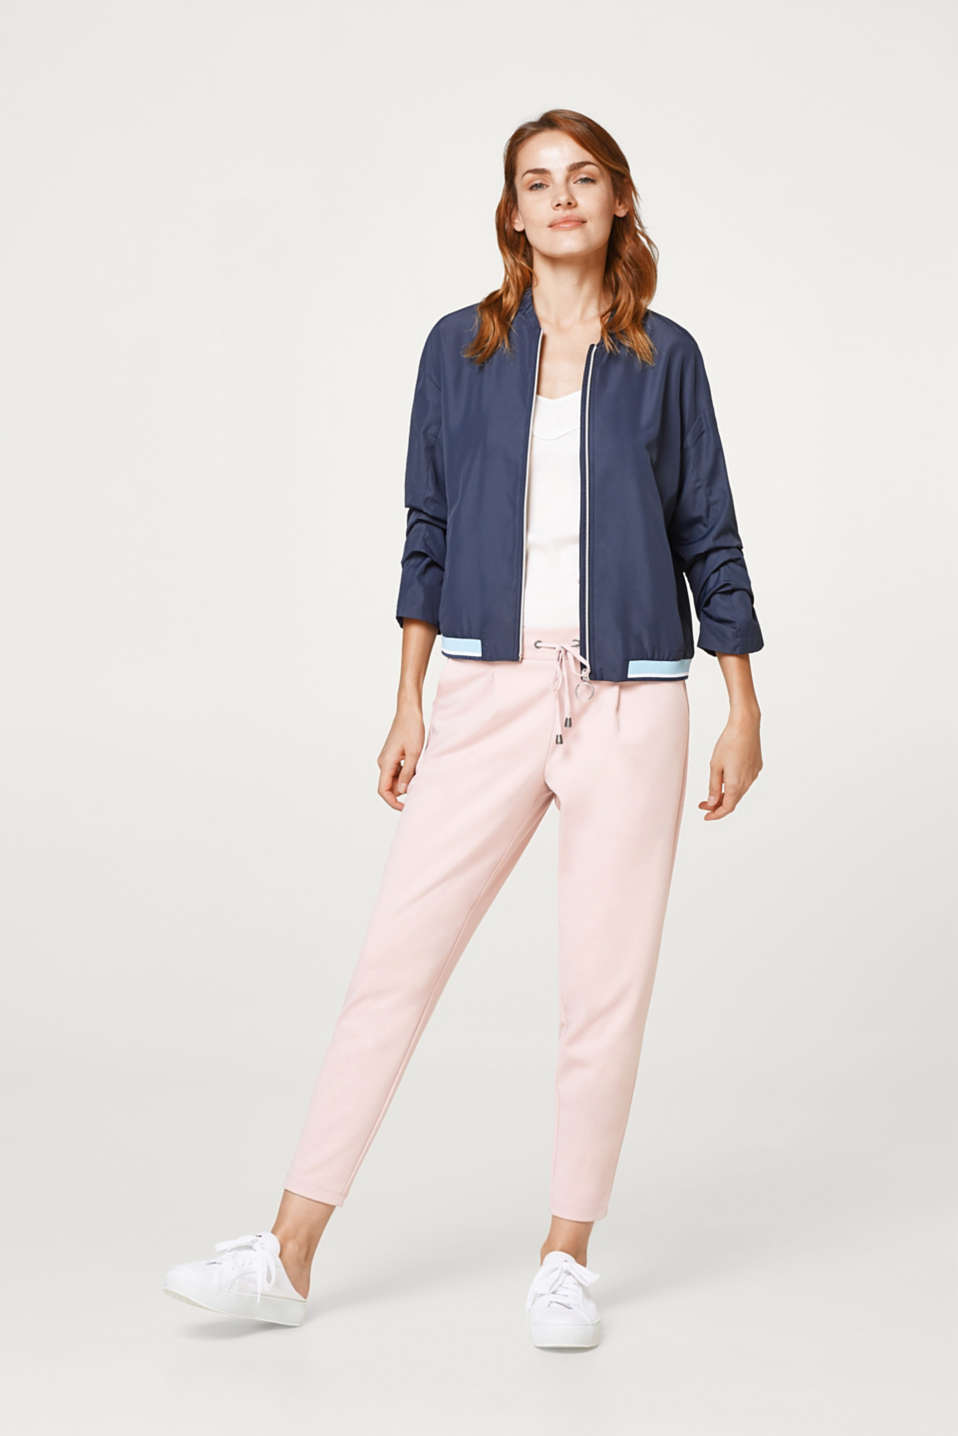 Ultra-lightweight bomber jacket with pretty details